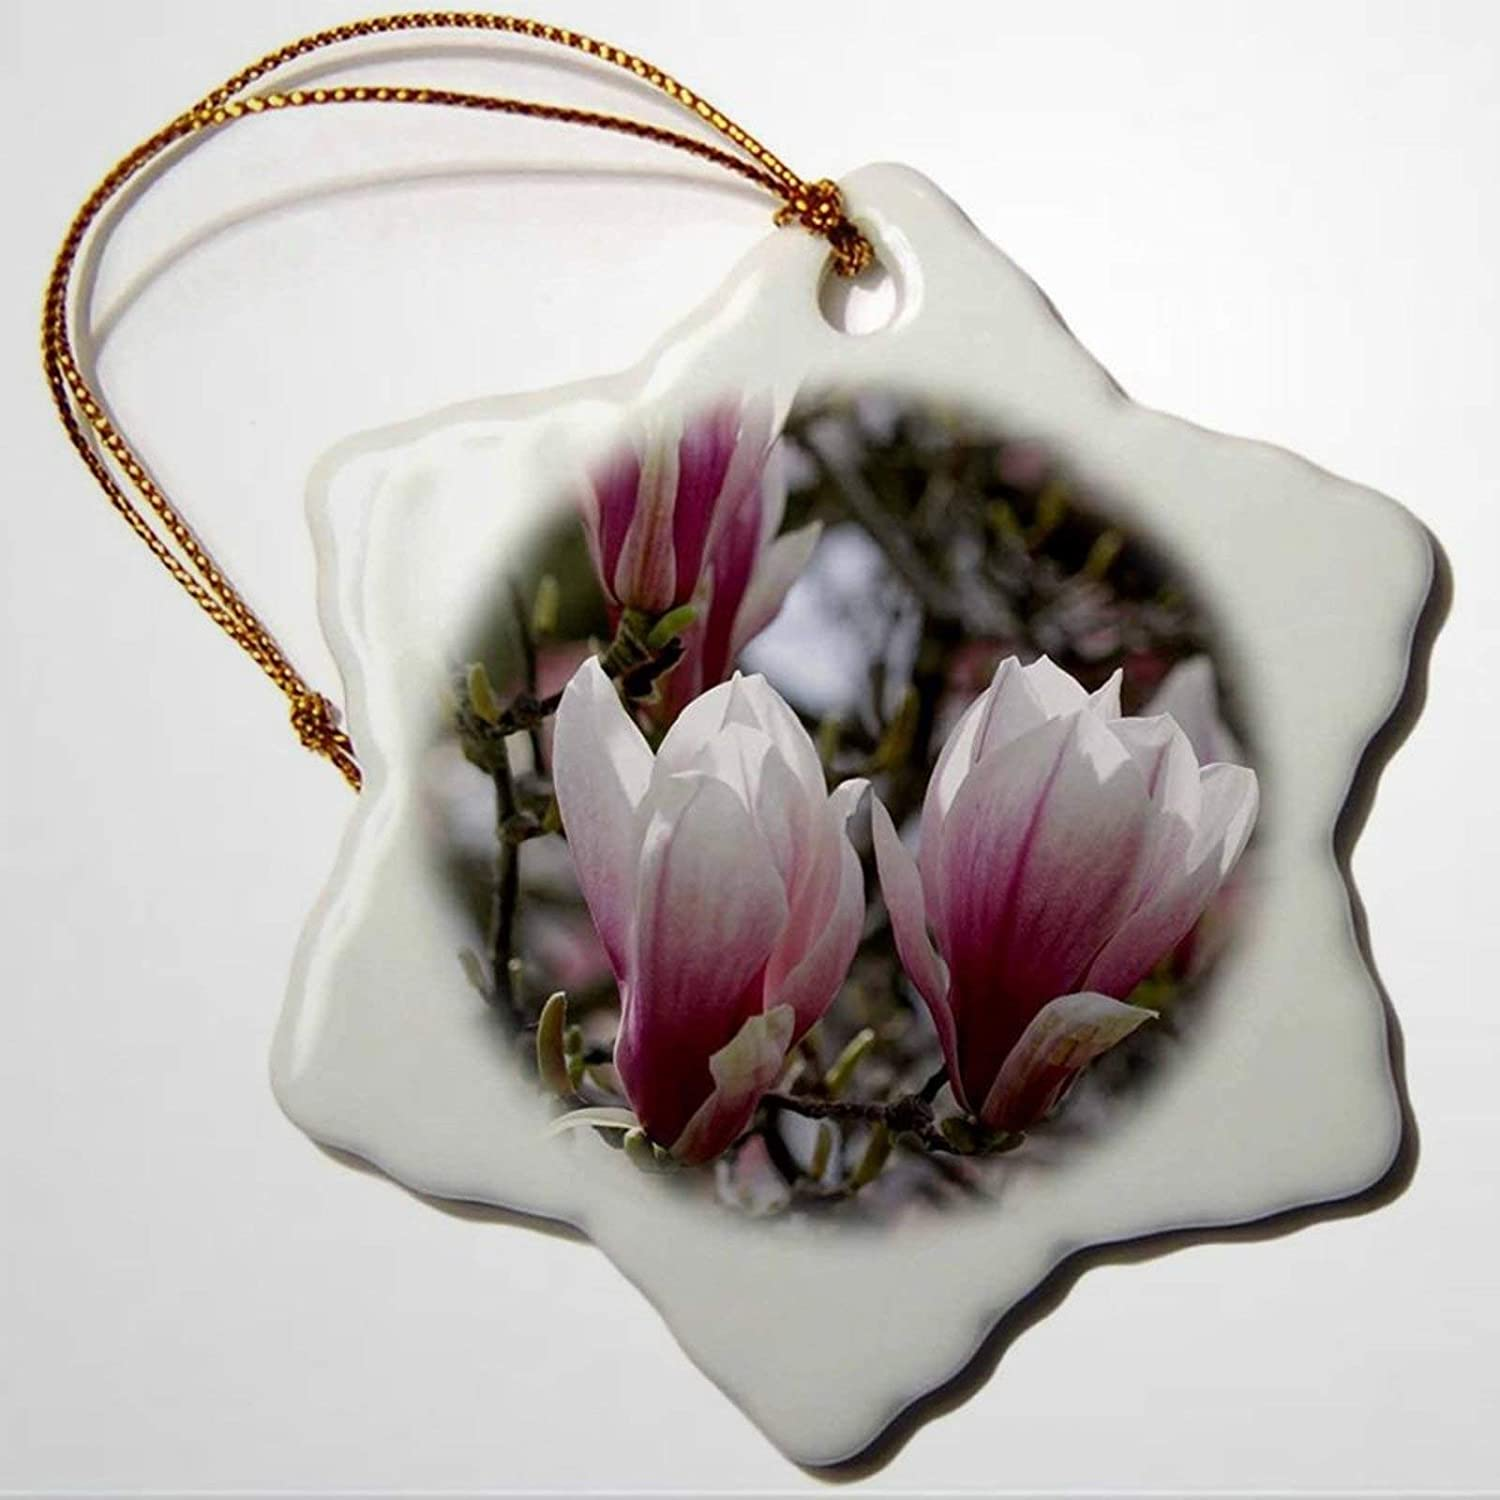 BYRON HOYLE Magnolia Lili Flora Blooms in Boise Idaho Snowflake Ornament Porcelain Christmas Ornaments Pandemic Xmas Decor Wedding Ornament Holiday Present